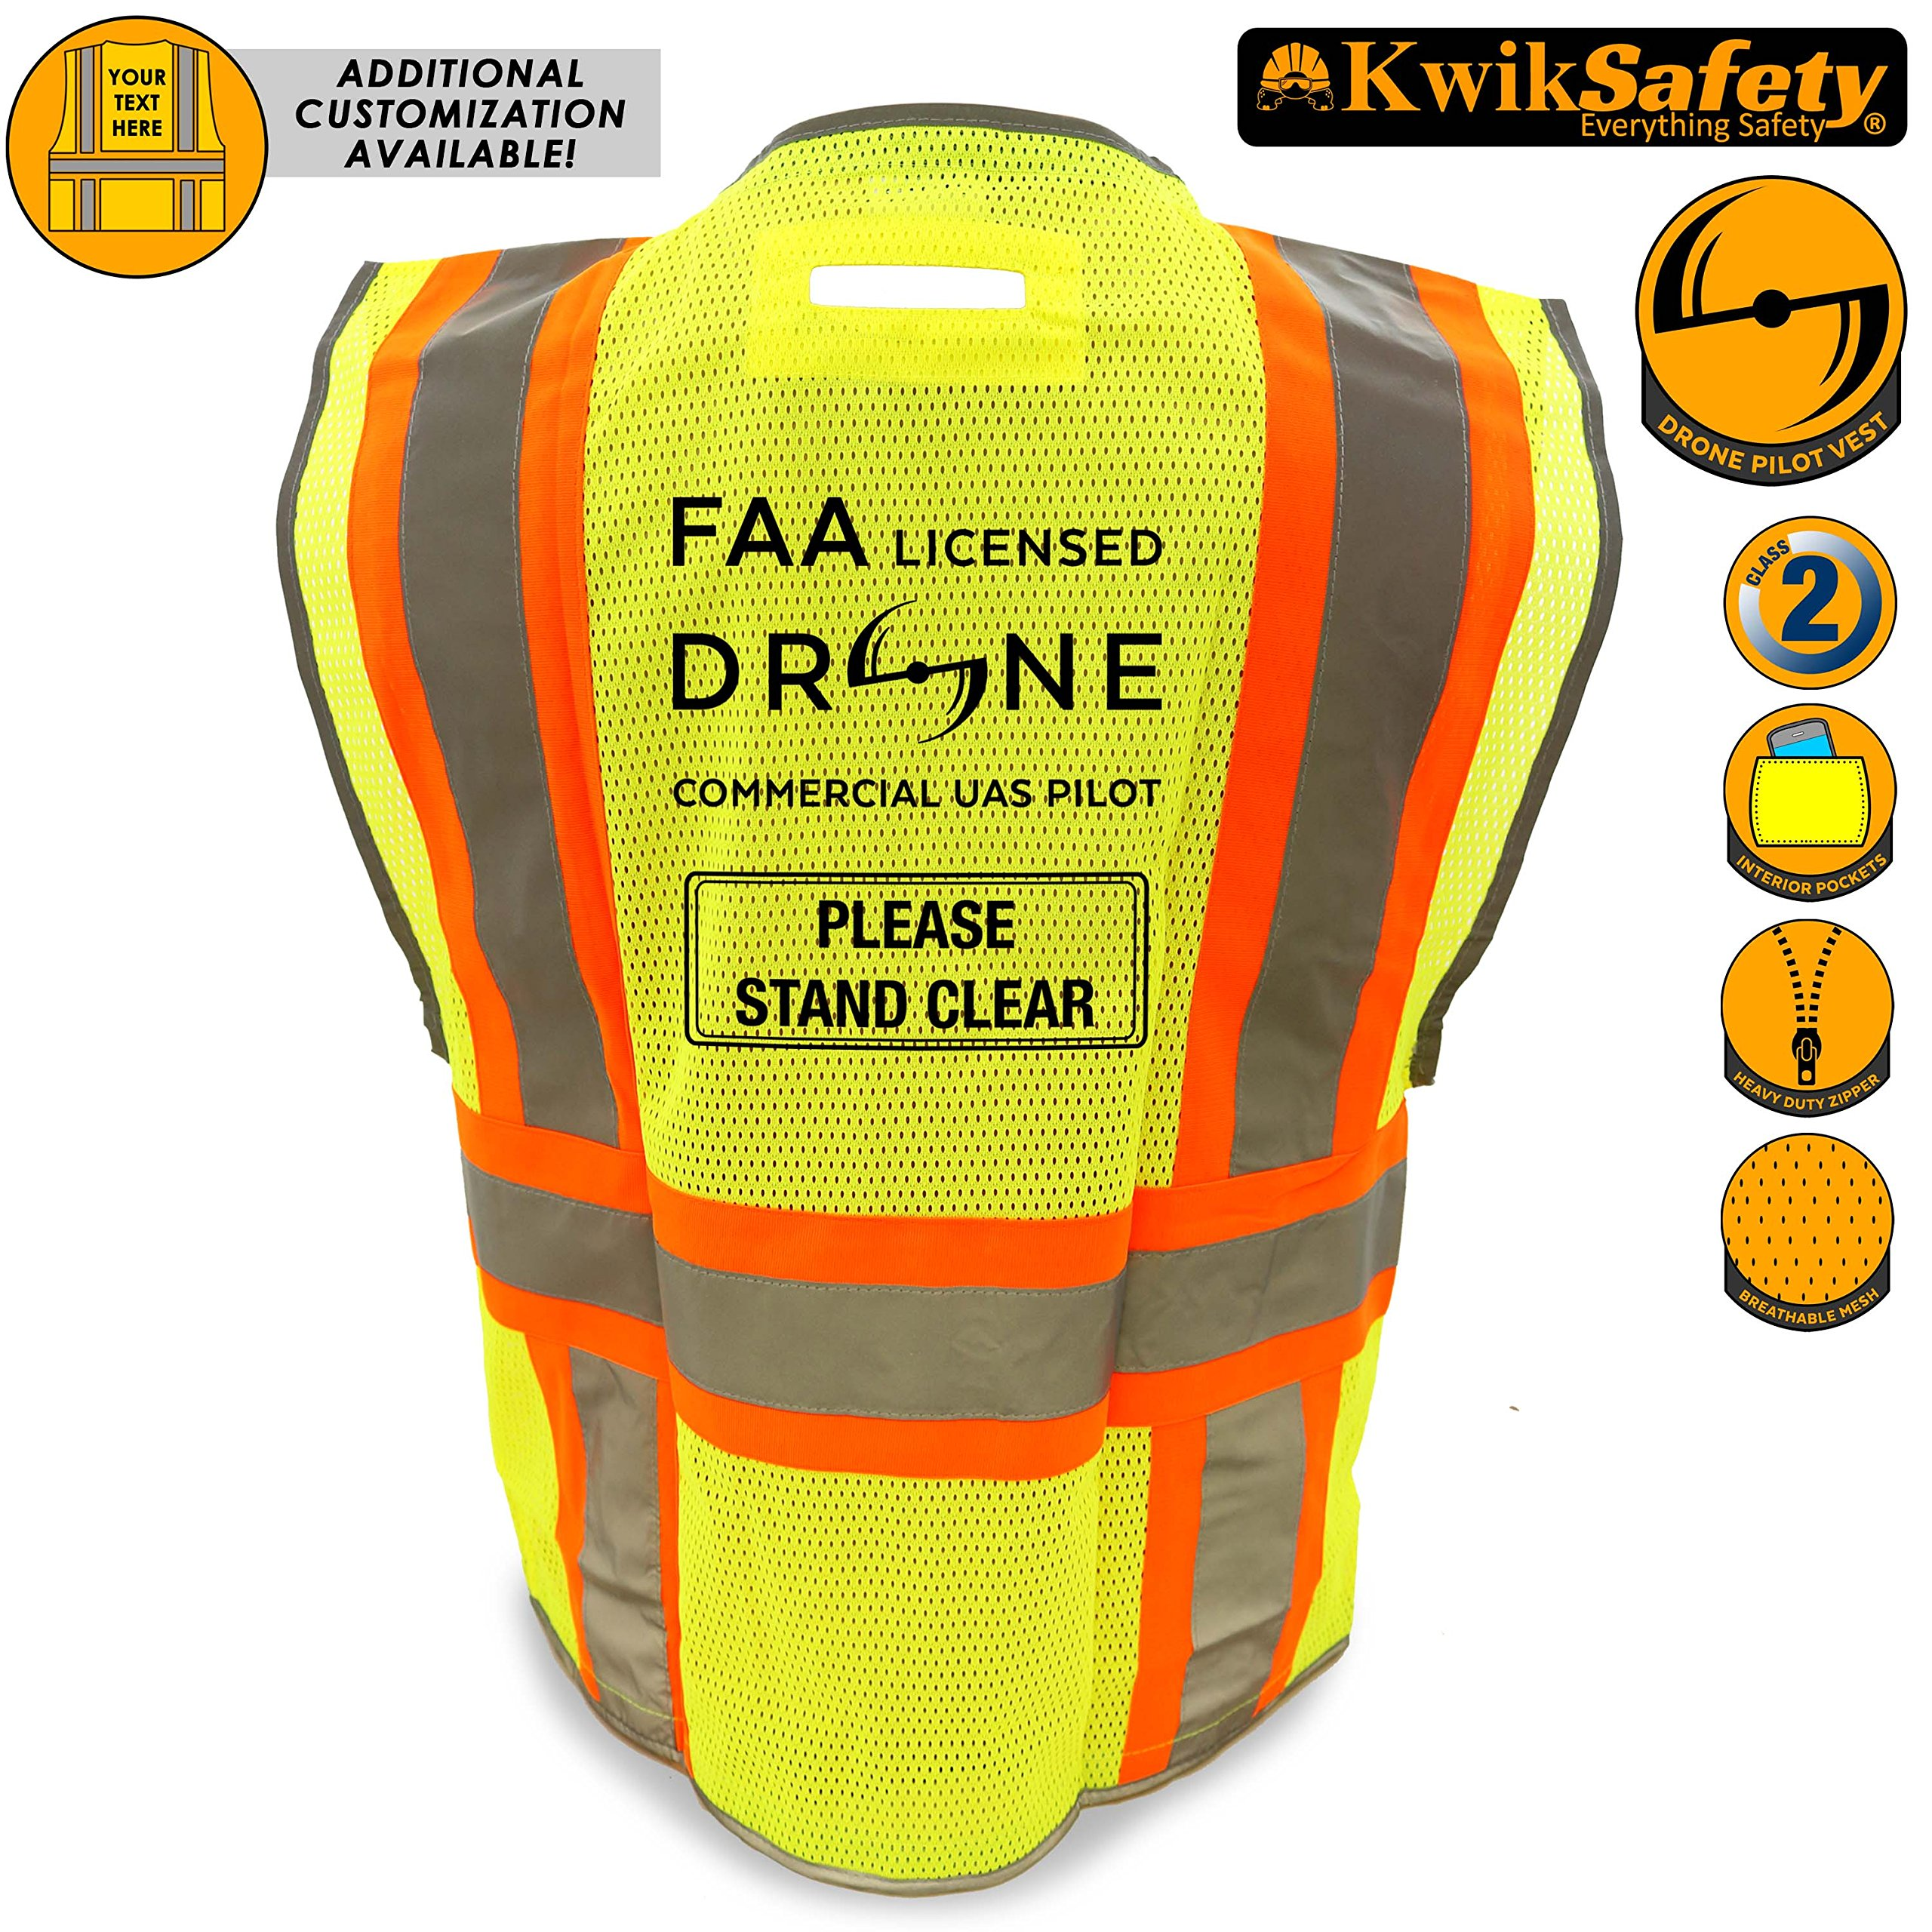 KwikSafety PILOT | Drone Safety Vest | Class 2 ANSI Compliant FAA Licensed | 360° High Visibility Reflective UAG Work Wear | Hi Vis Certified Commercial Pilot Men & Women Regular to Oversized | XL by KwikSafety (Image #1)